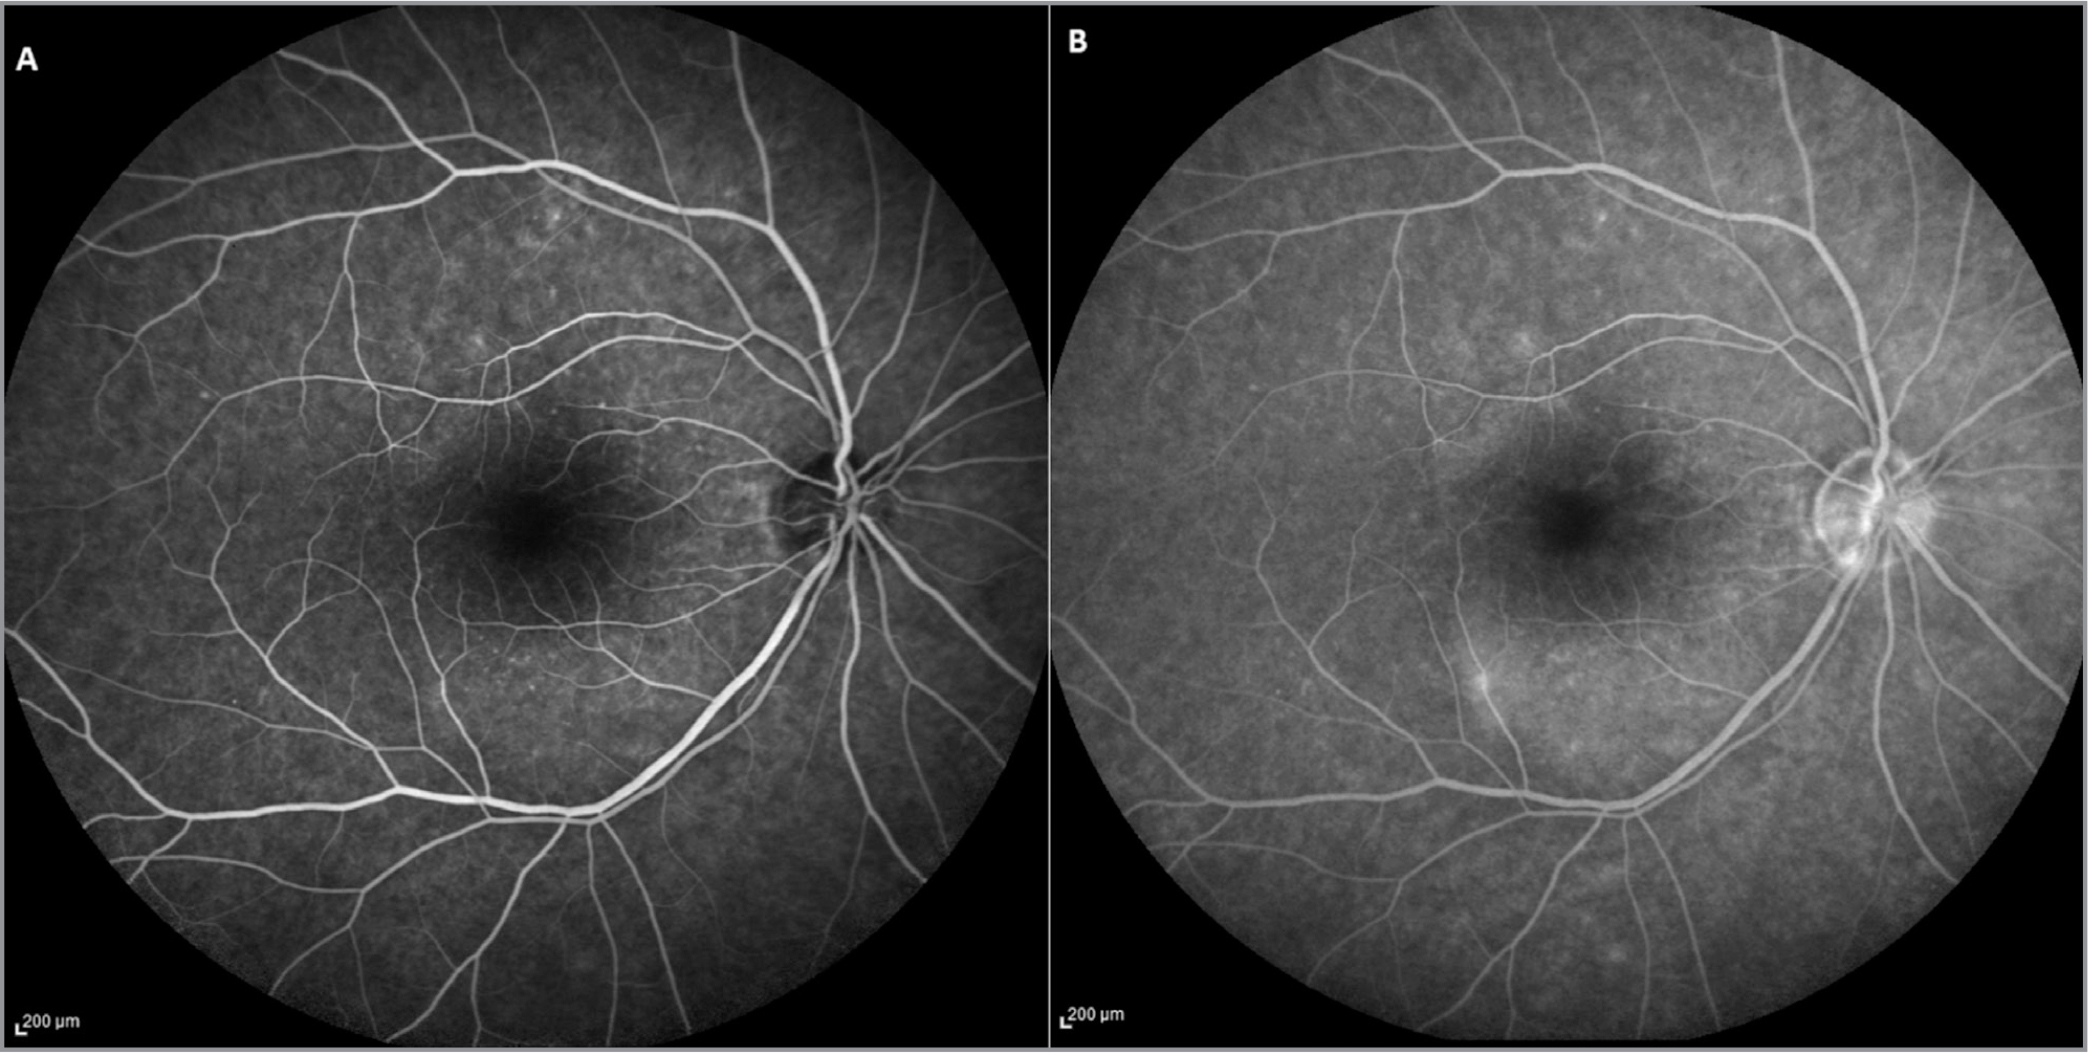 (A, B) Fluorescein angiography revealing a central hypofluorescence in the early stages (A) followed by a progressive hyperfluorescence in the area of the lesion in the mid- and late-phases of examination (B).